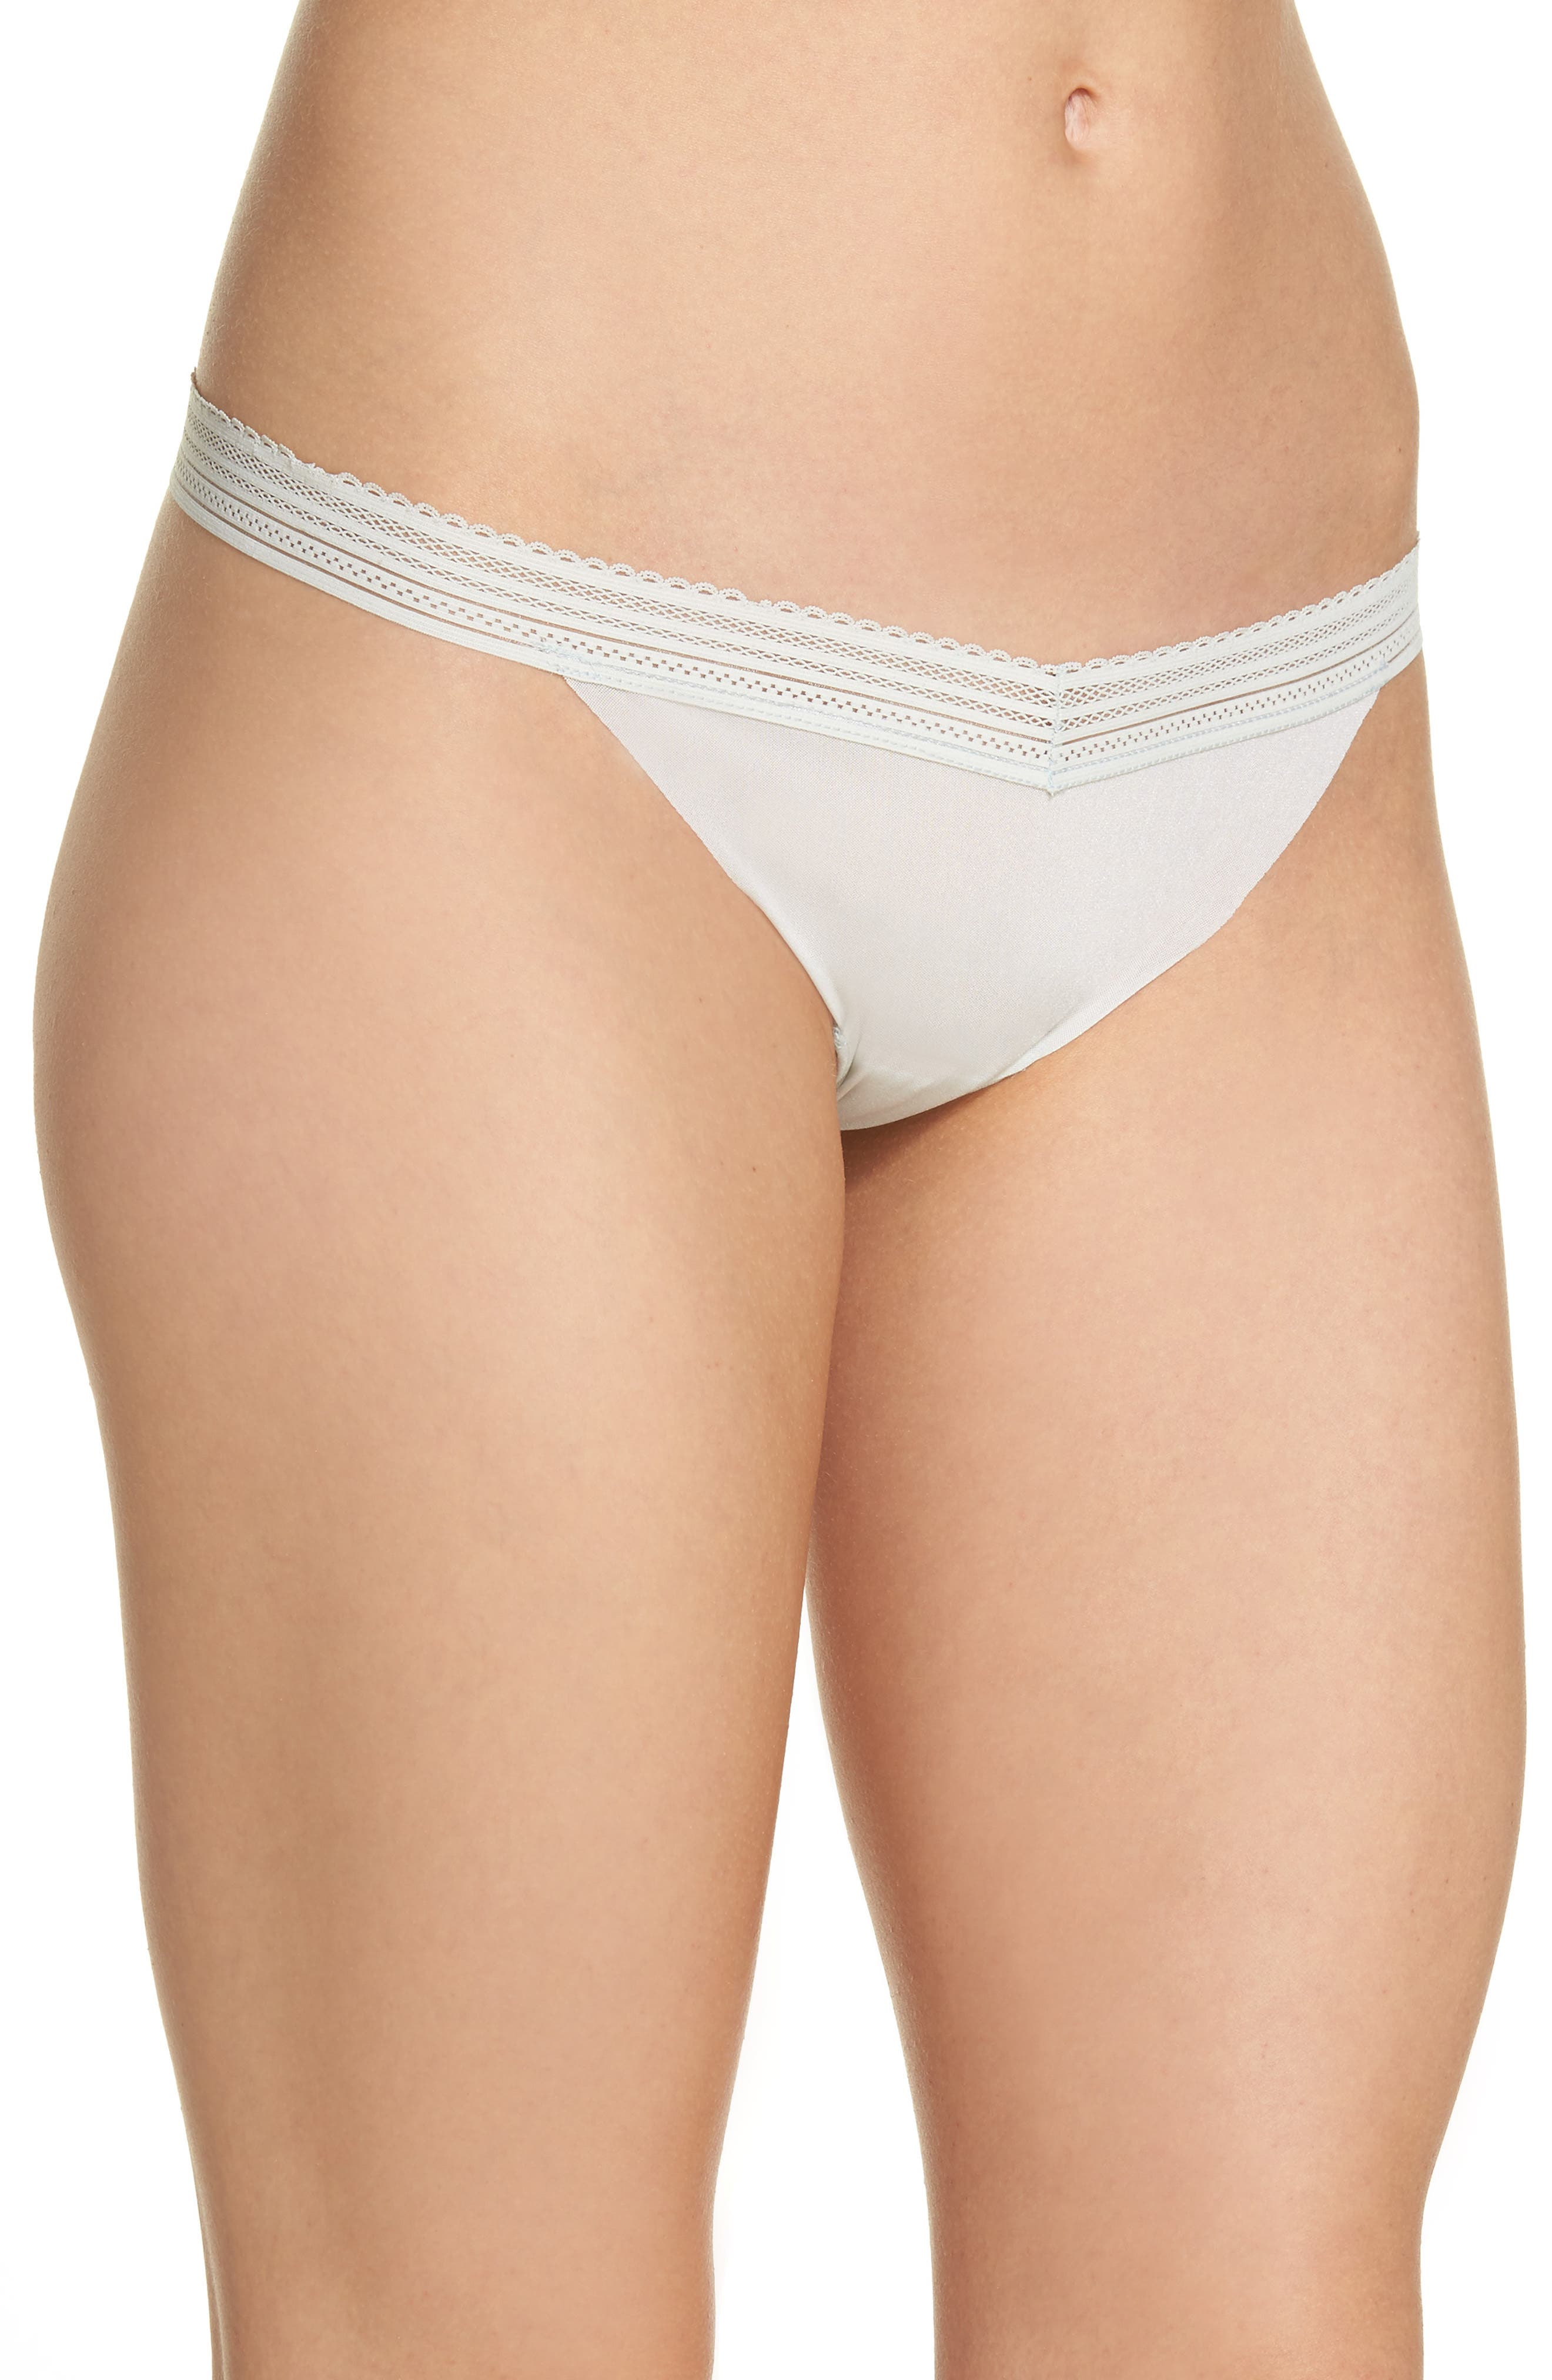 Laced In Aire Thong,                             Alternate thumbnail 3, color,                             Desert Sage